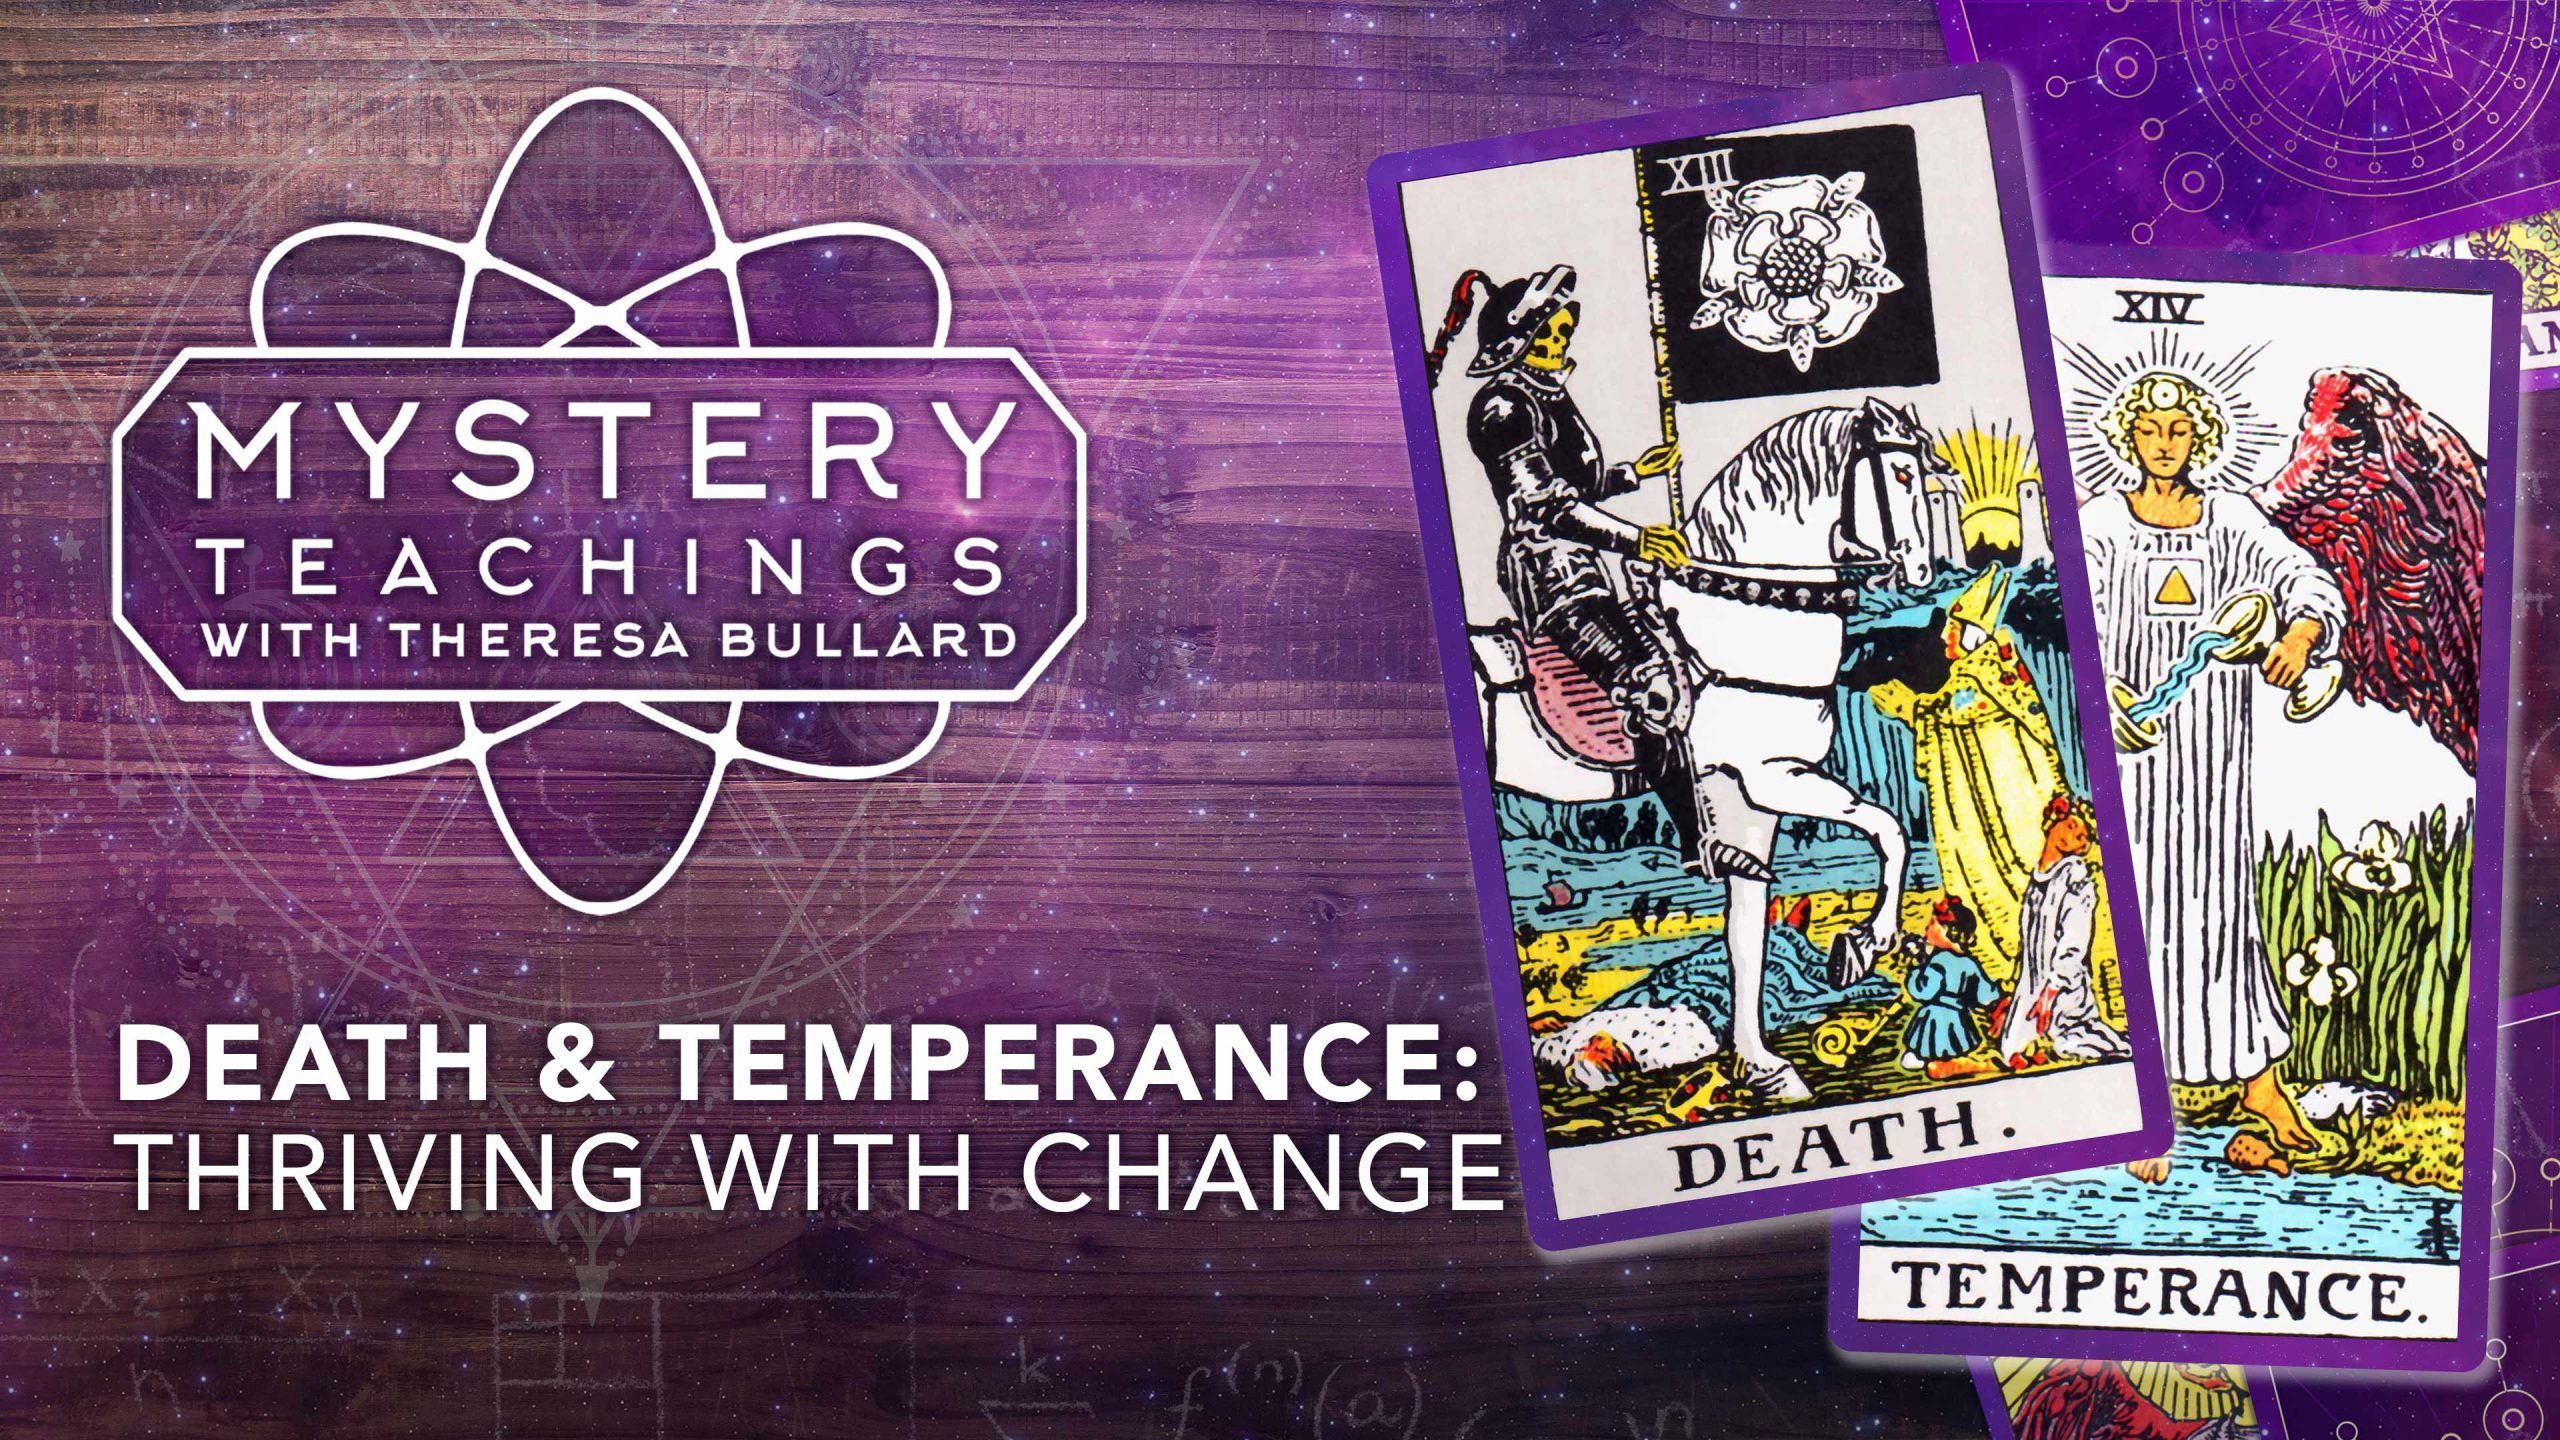 202120_MT_s04e08_Death-and-Temperance_Thriving-with-Change_16x9